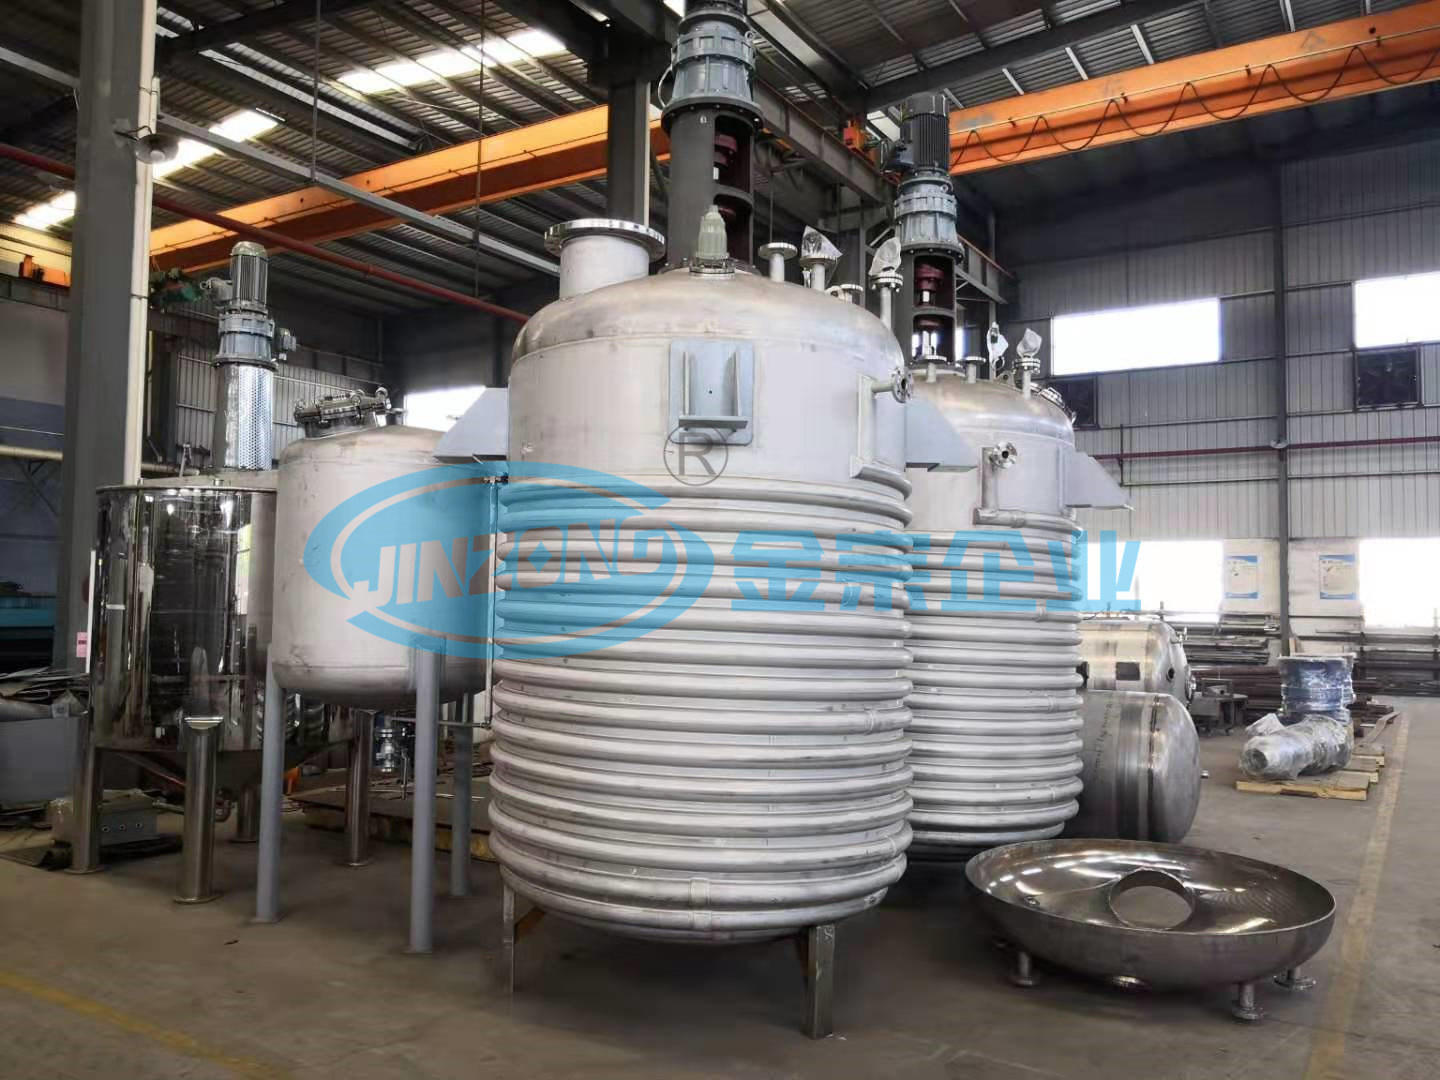 Stainless Steel Reactor with Limpet Coils Industrial Process Reactors Fabricator